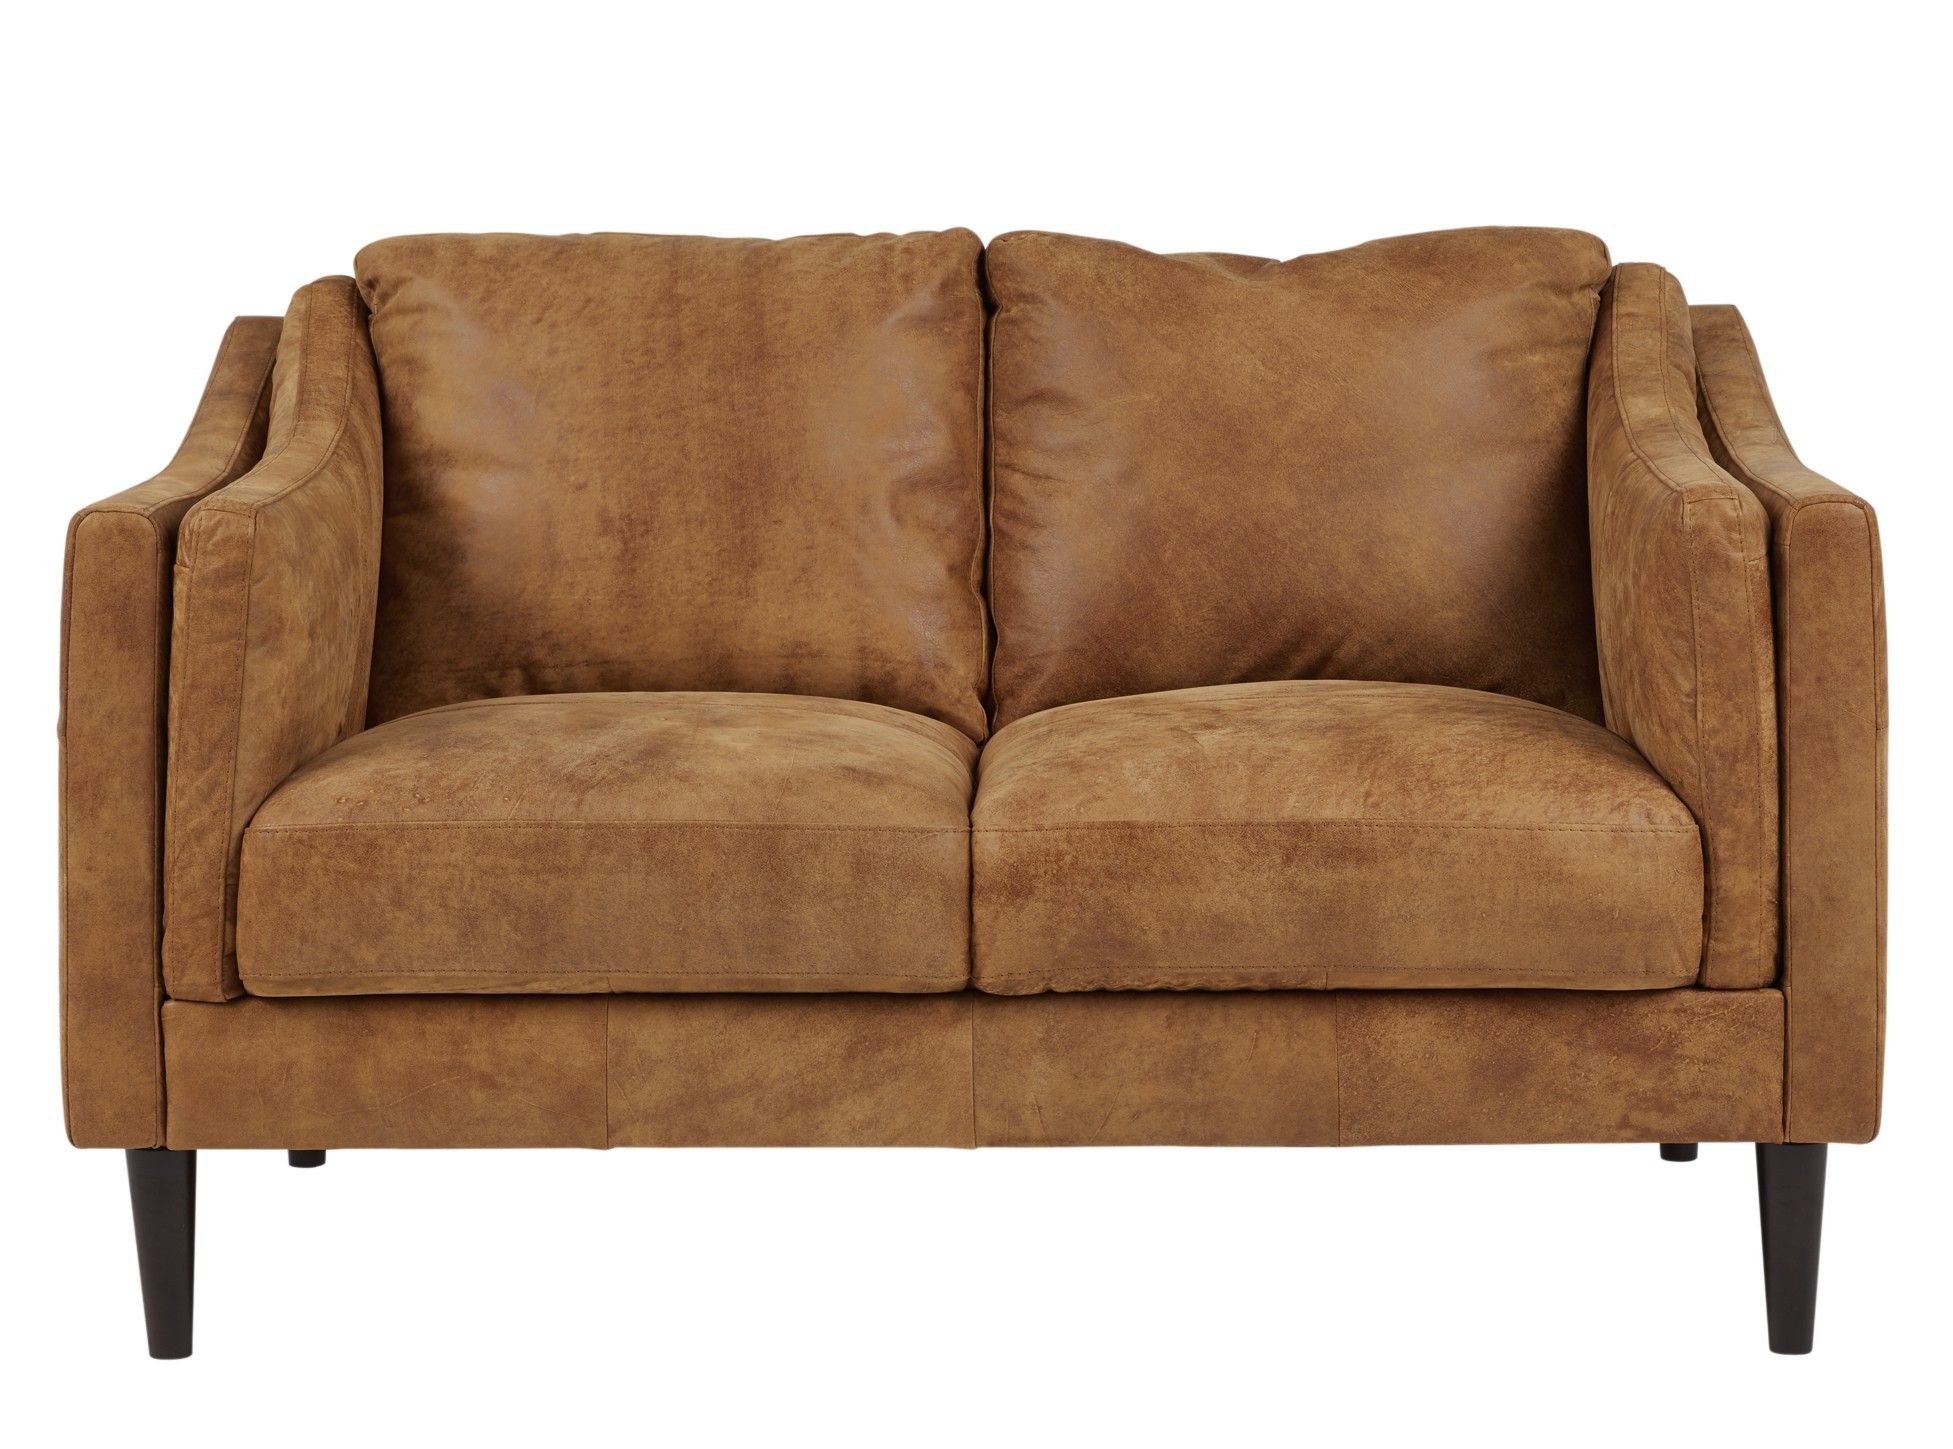 Lindon 2 Seater Sofa Outback Tan Leather from Made Brown